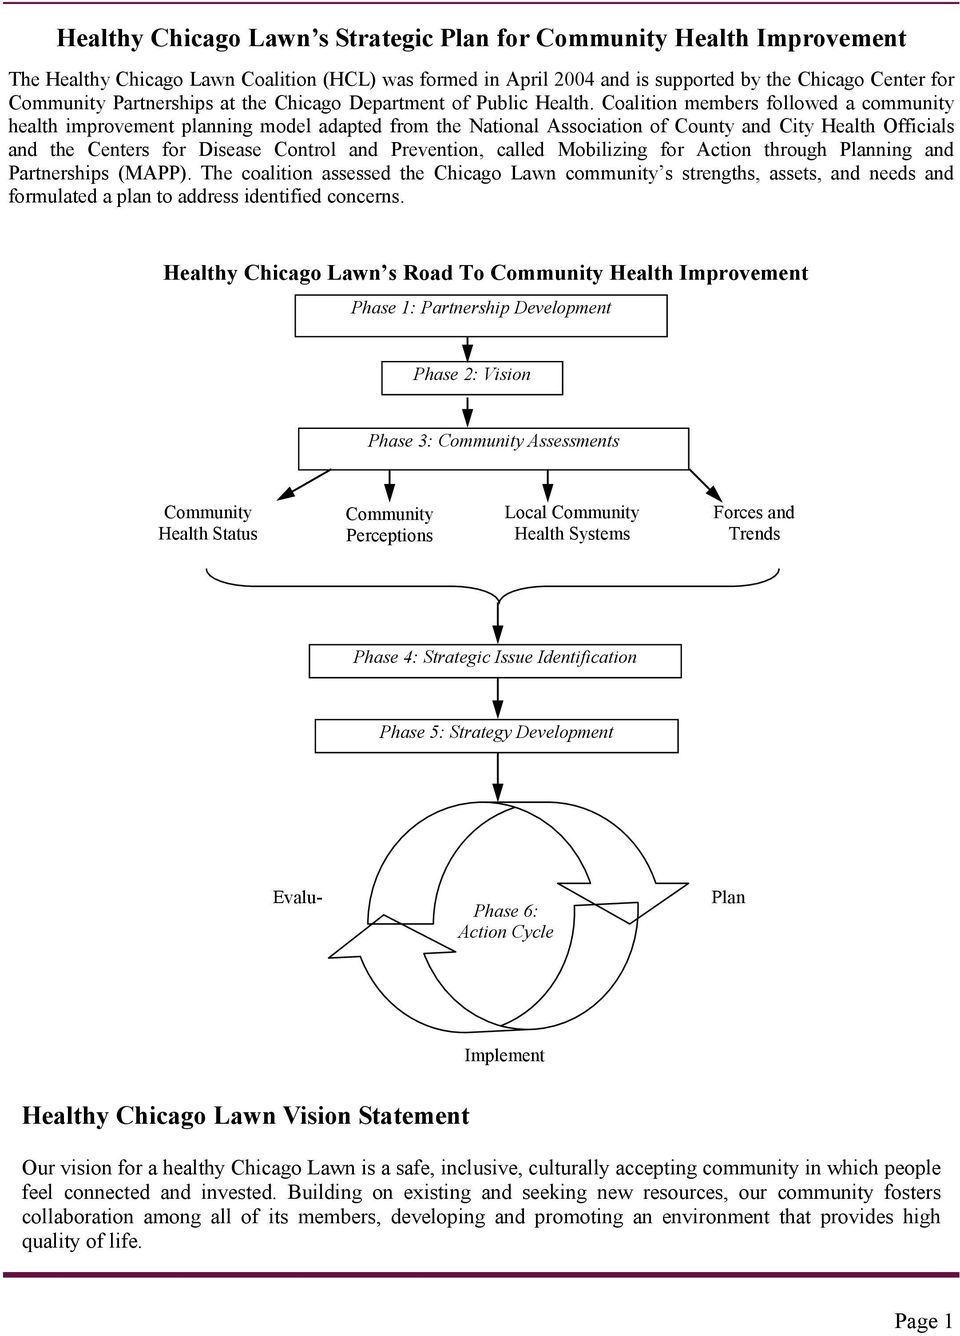 Coalition members followed a community health improvement planning model adapted from the National Association of County and City Health Officials and the Centers for Disease Control and Prevention,